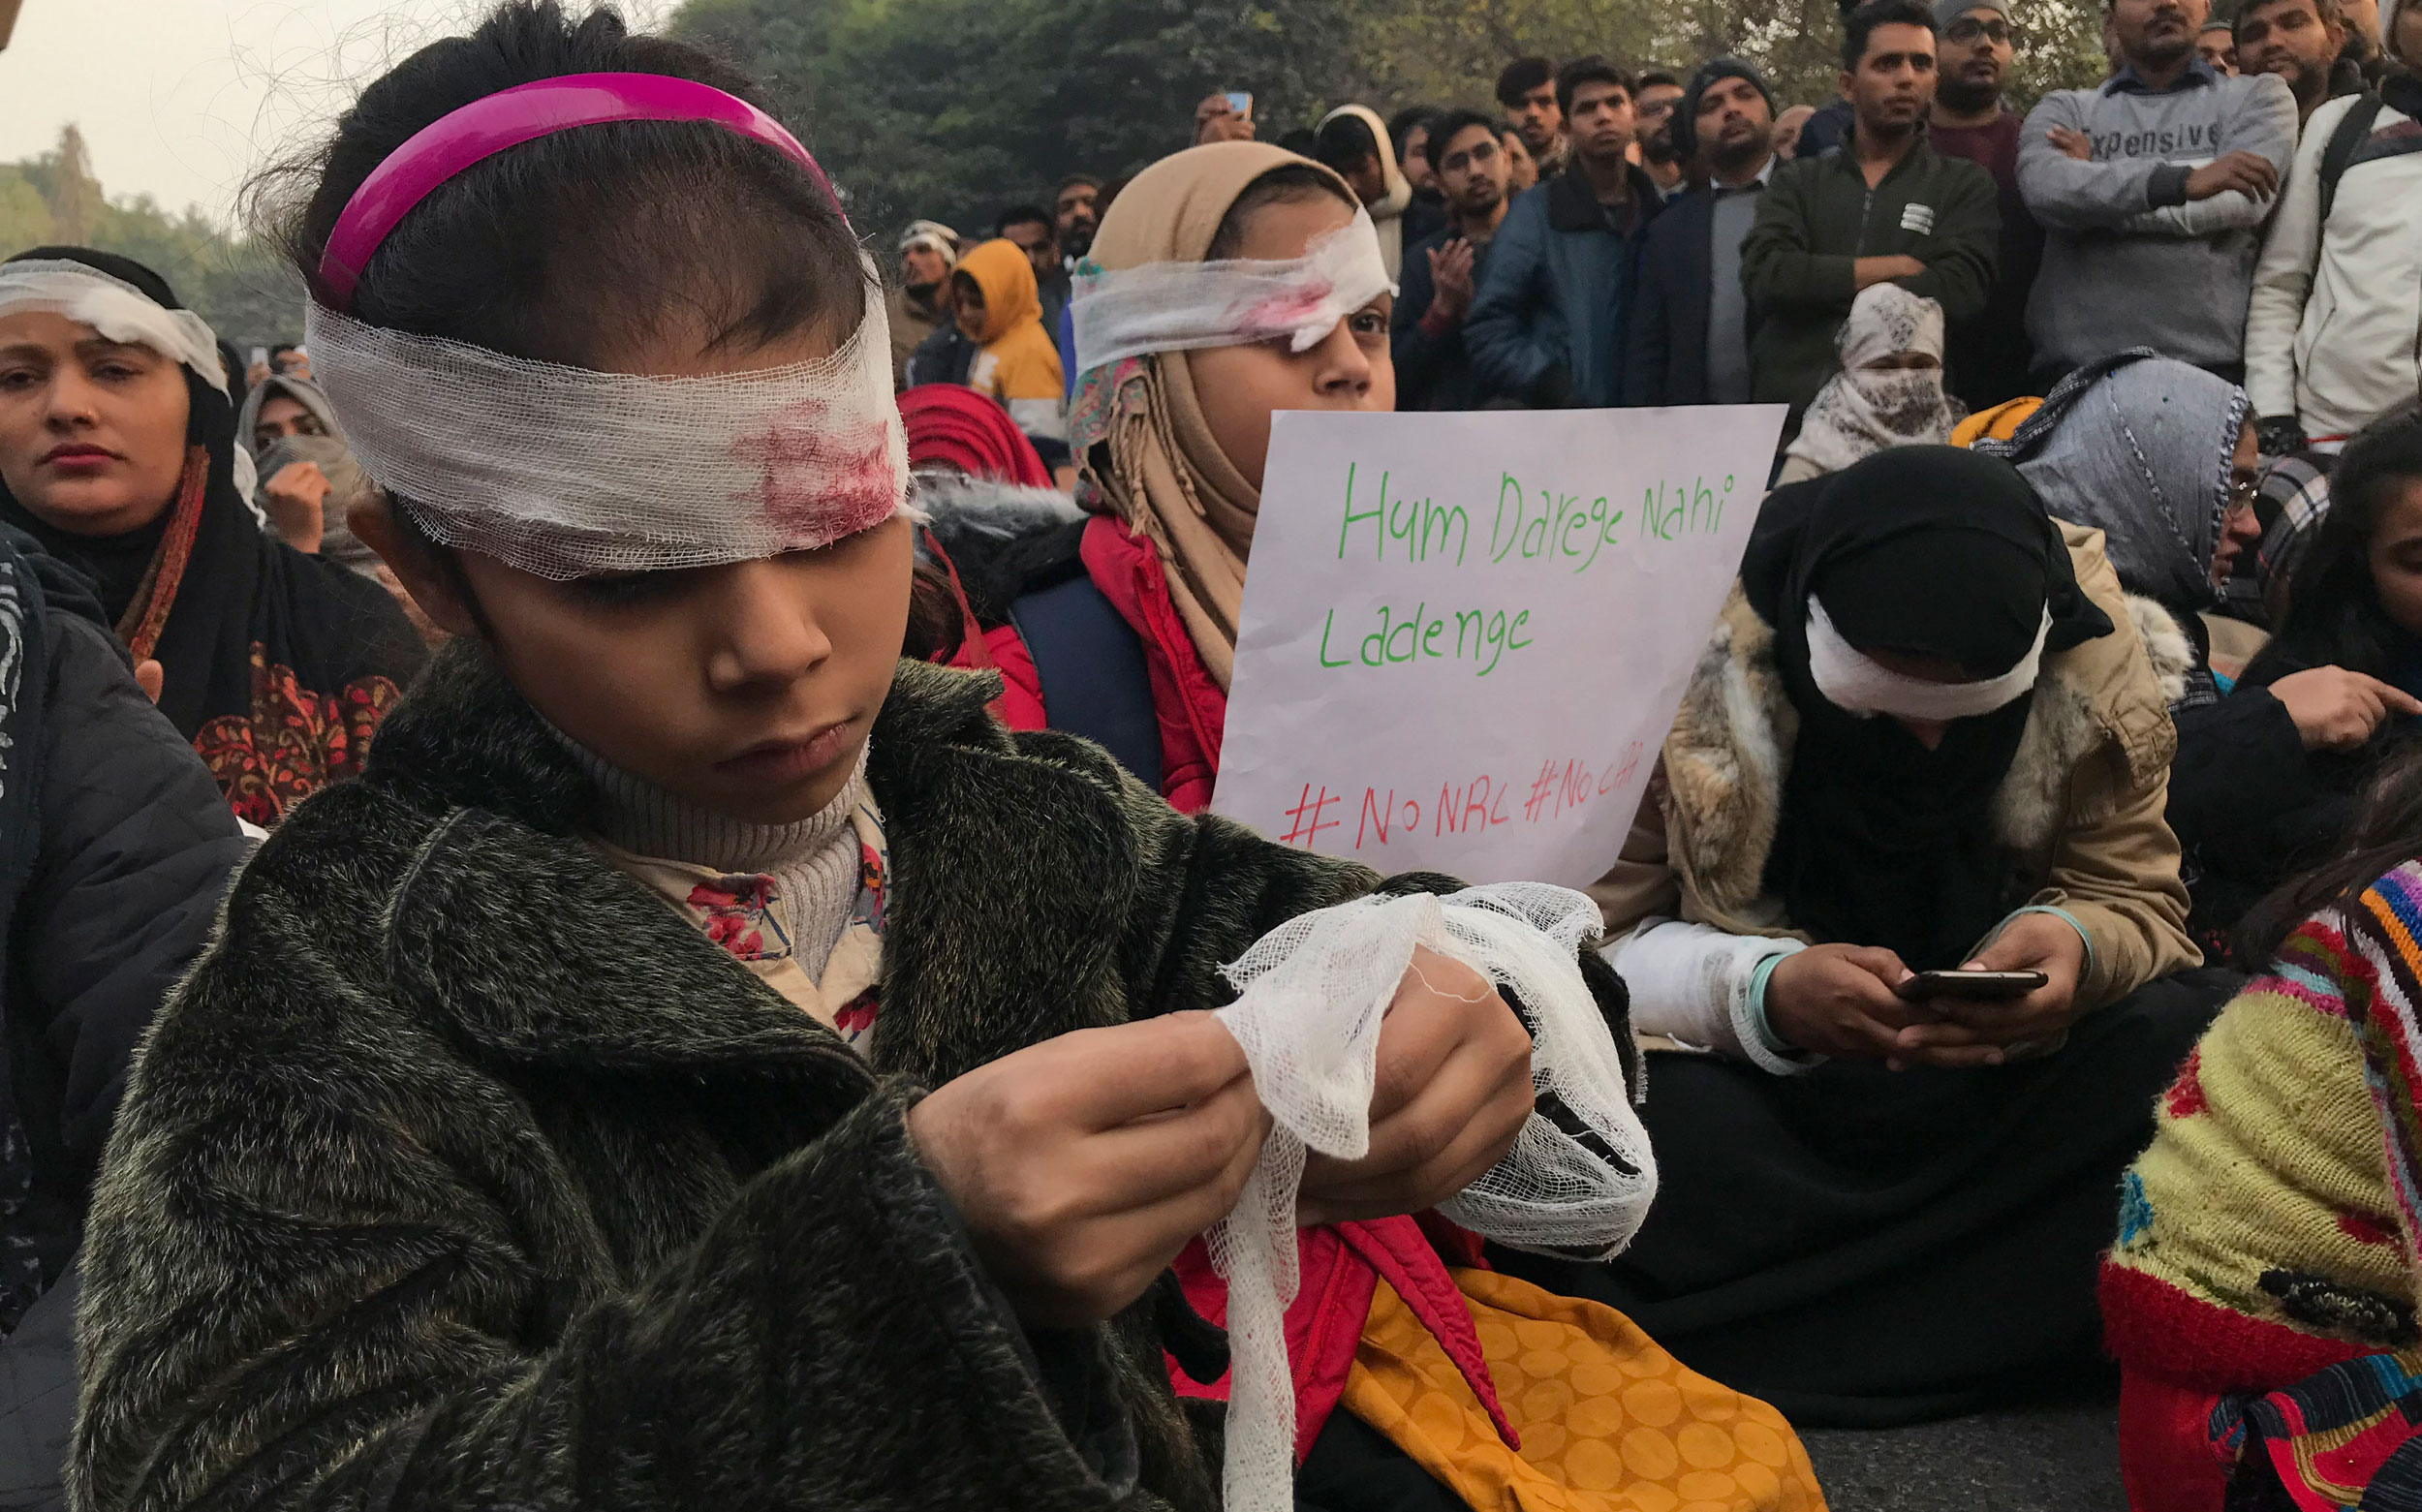 Protesters wearing bandages in solidarity with a student who lost his eye during the police attack on December 15 at Jamia University in New Delhi, on December 29, 2019.